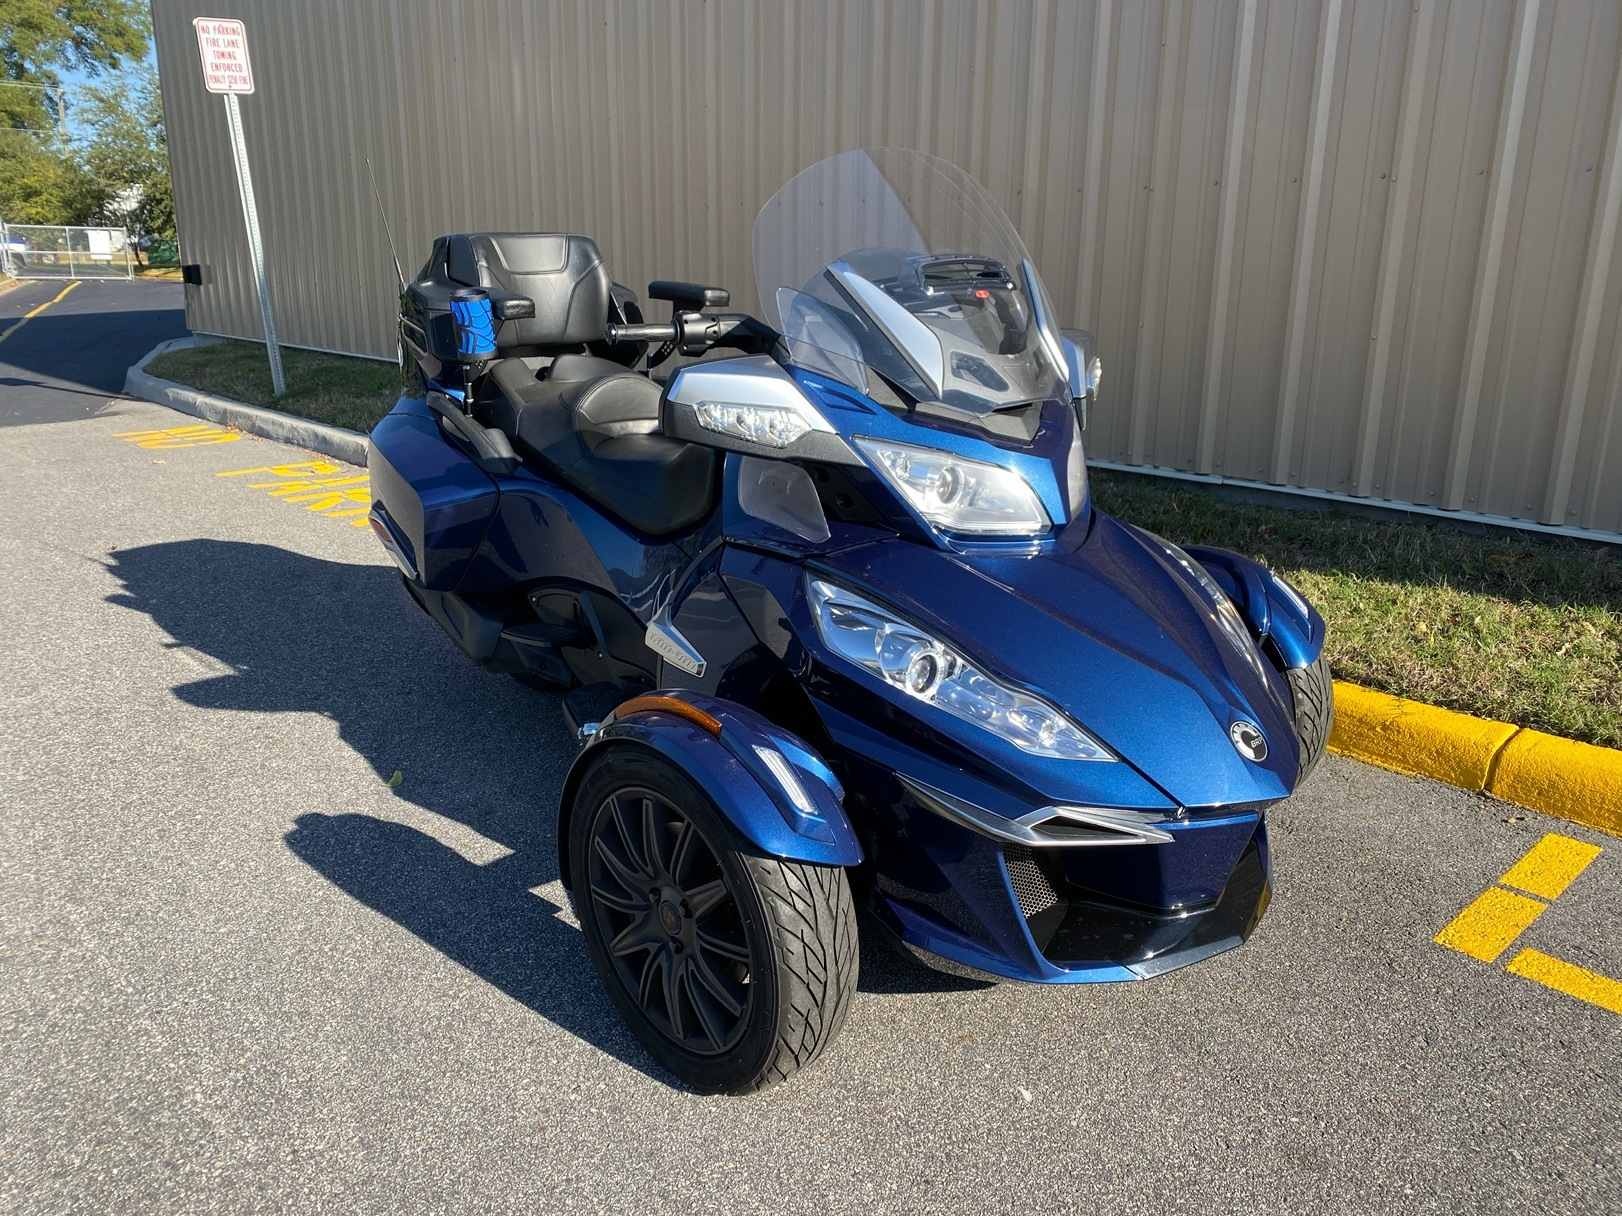 2017 Can-Am Spyder RT-S in Chesapeake, Virginia - Photo 2